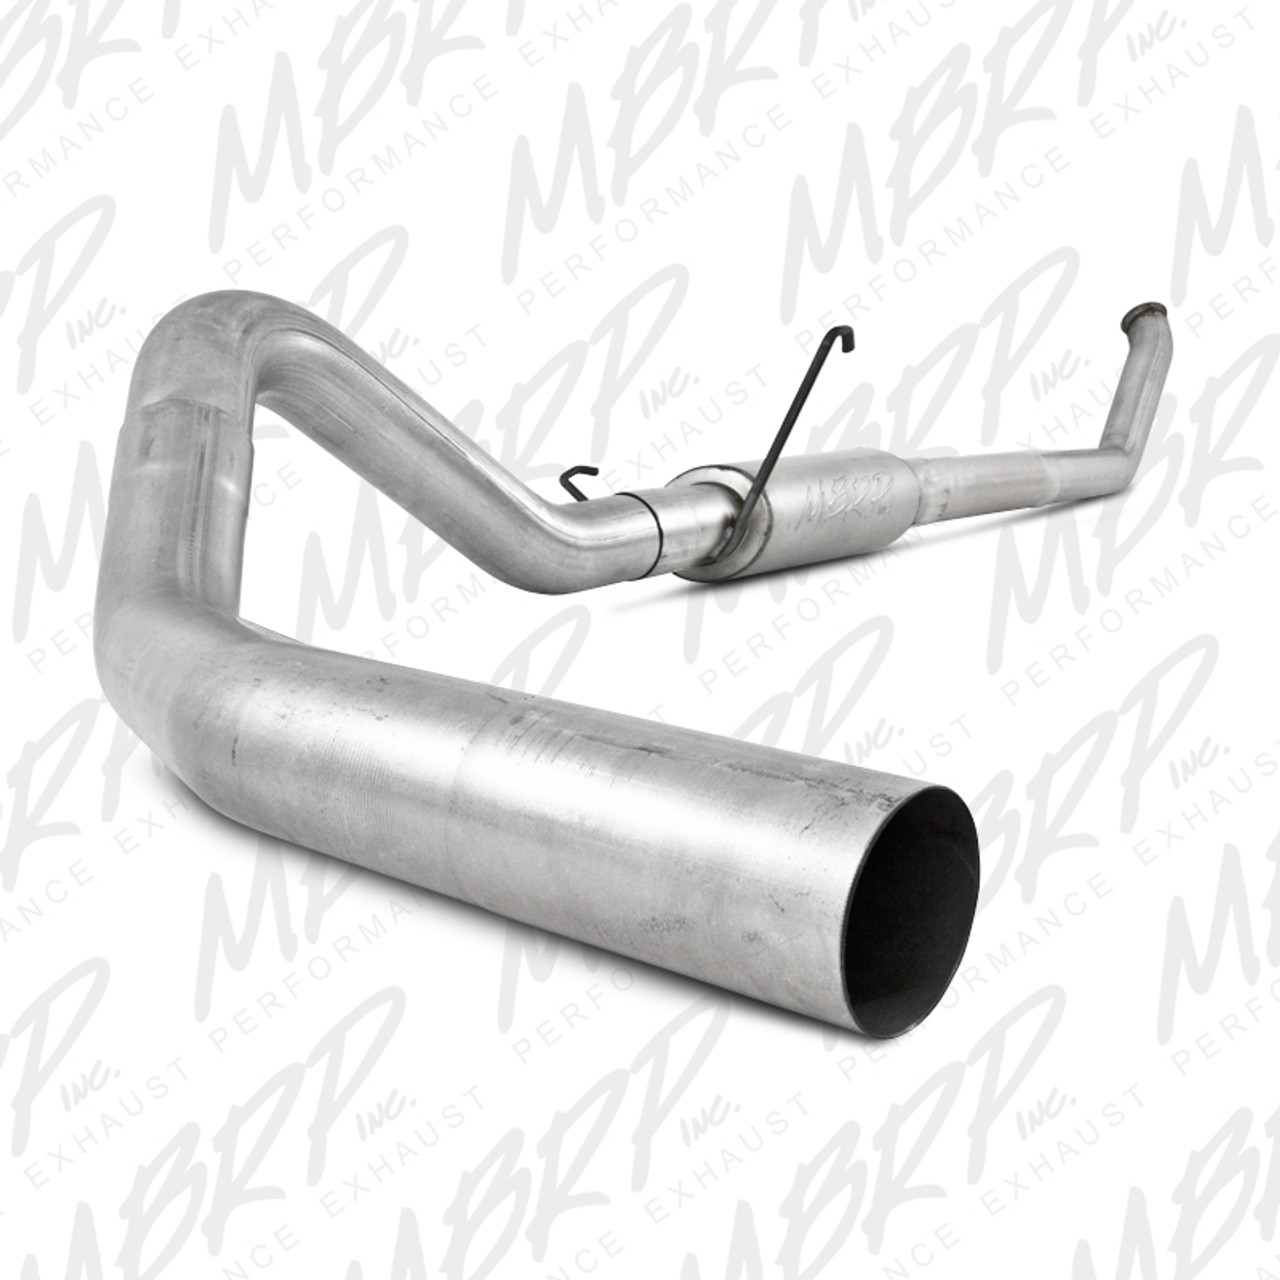 MBRP 2003-2004 Dodge Cummins Turbo Back, Cool Duals Exhaust System